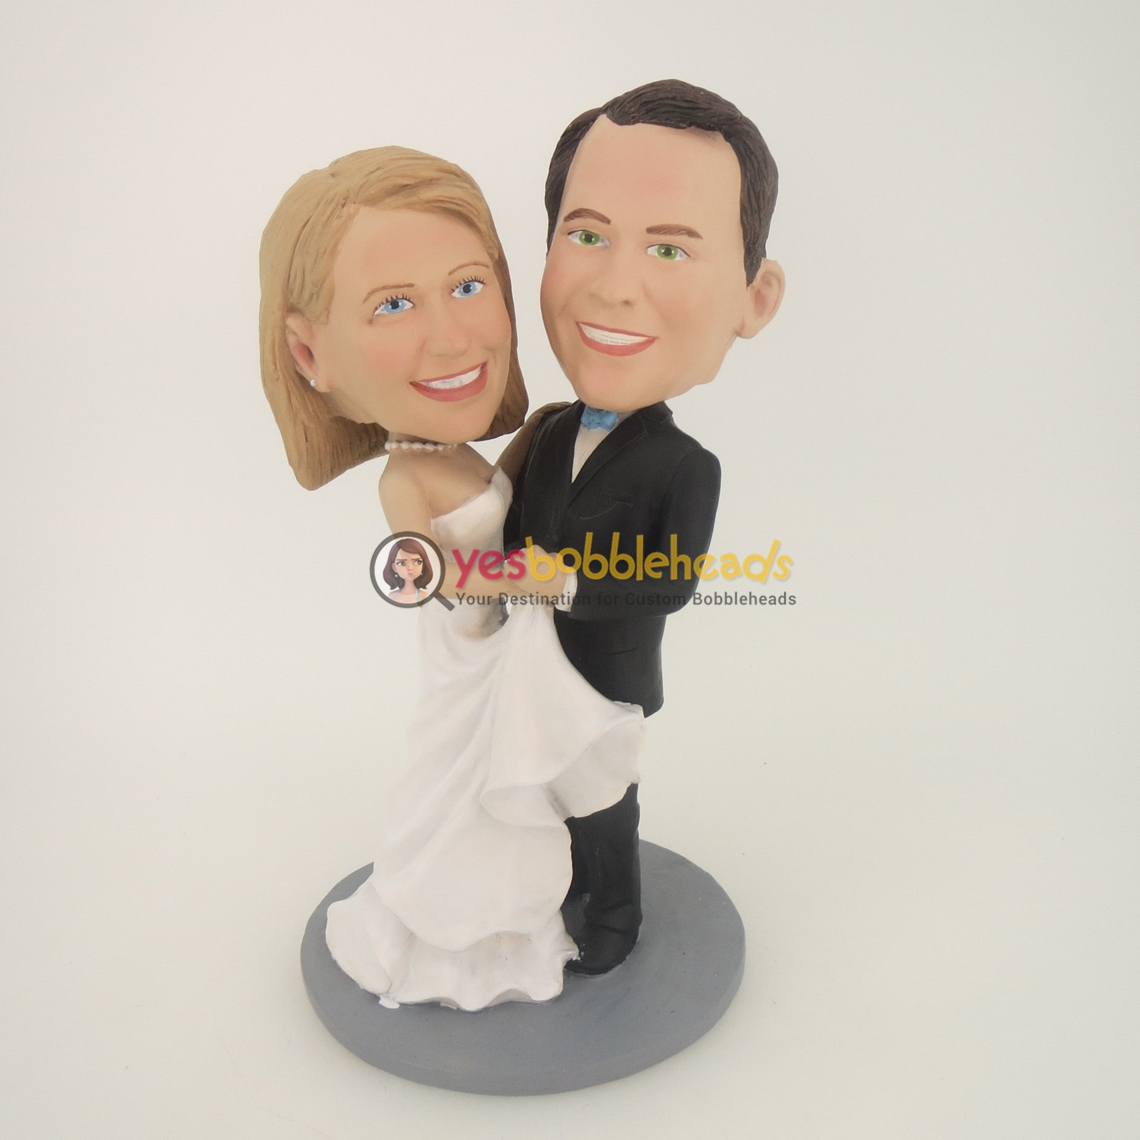 Picture of Custom Bobblehead Doll: Wedding Couple Holding Each Other